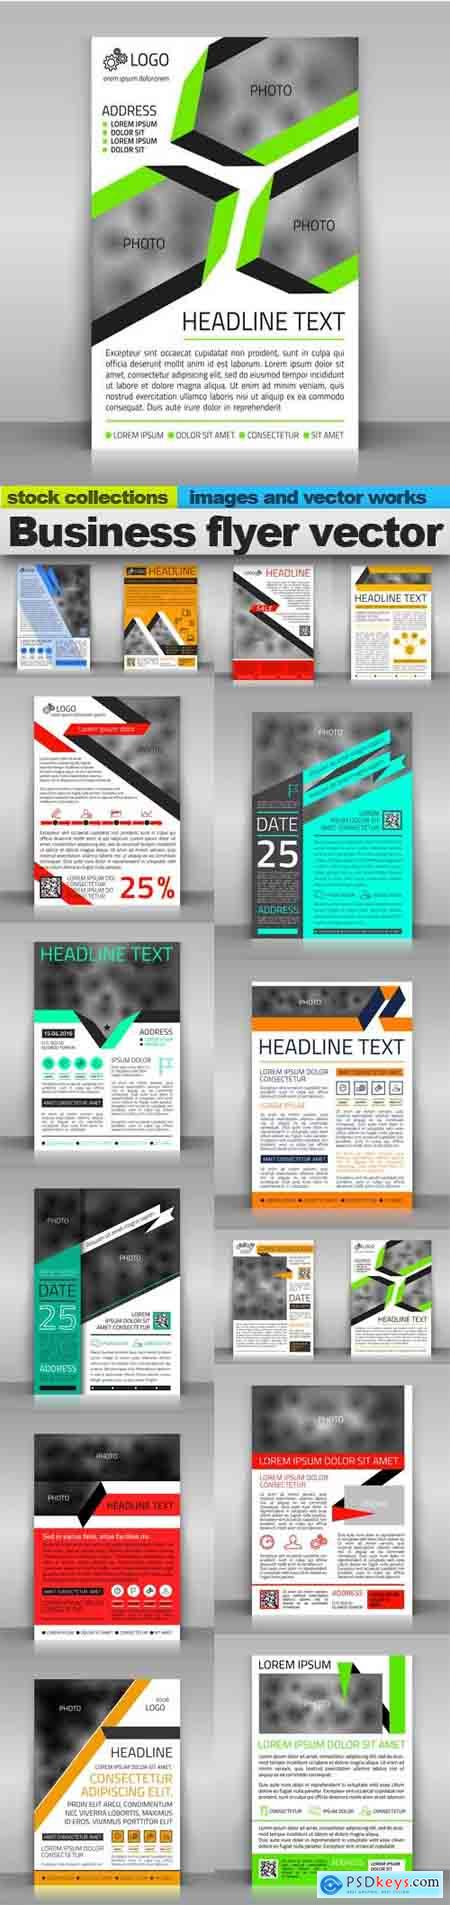 Business flyer vector, 15 x EPS